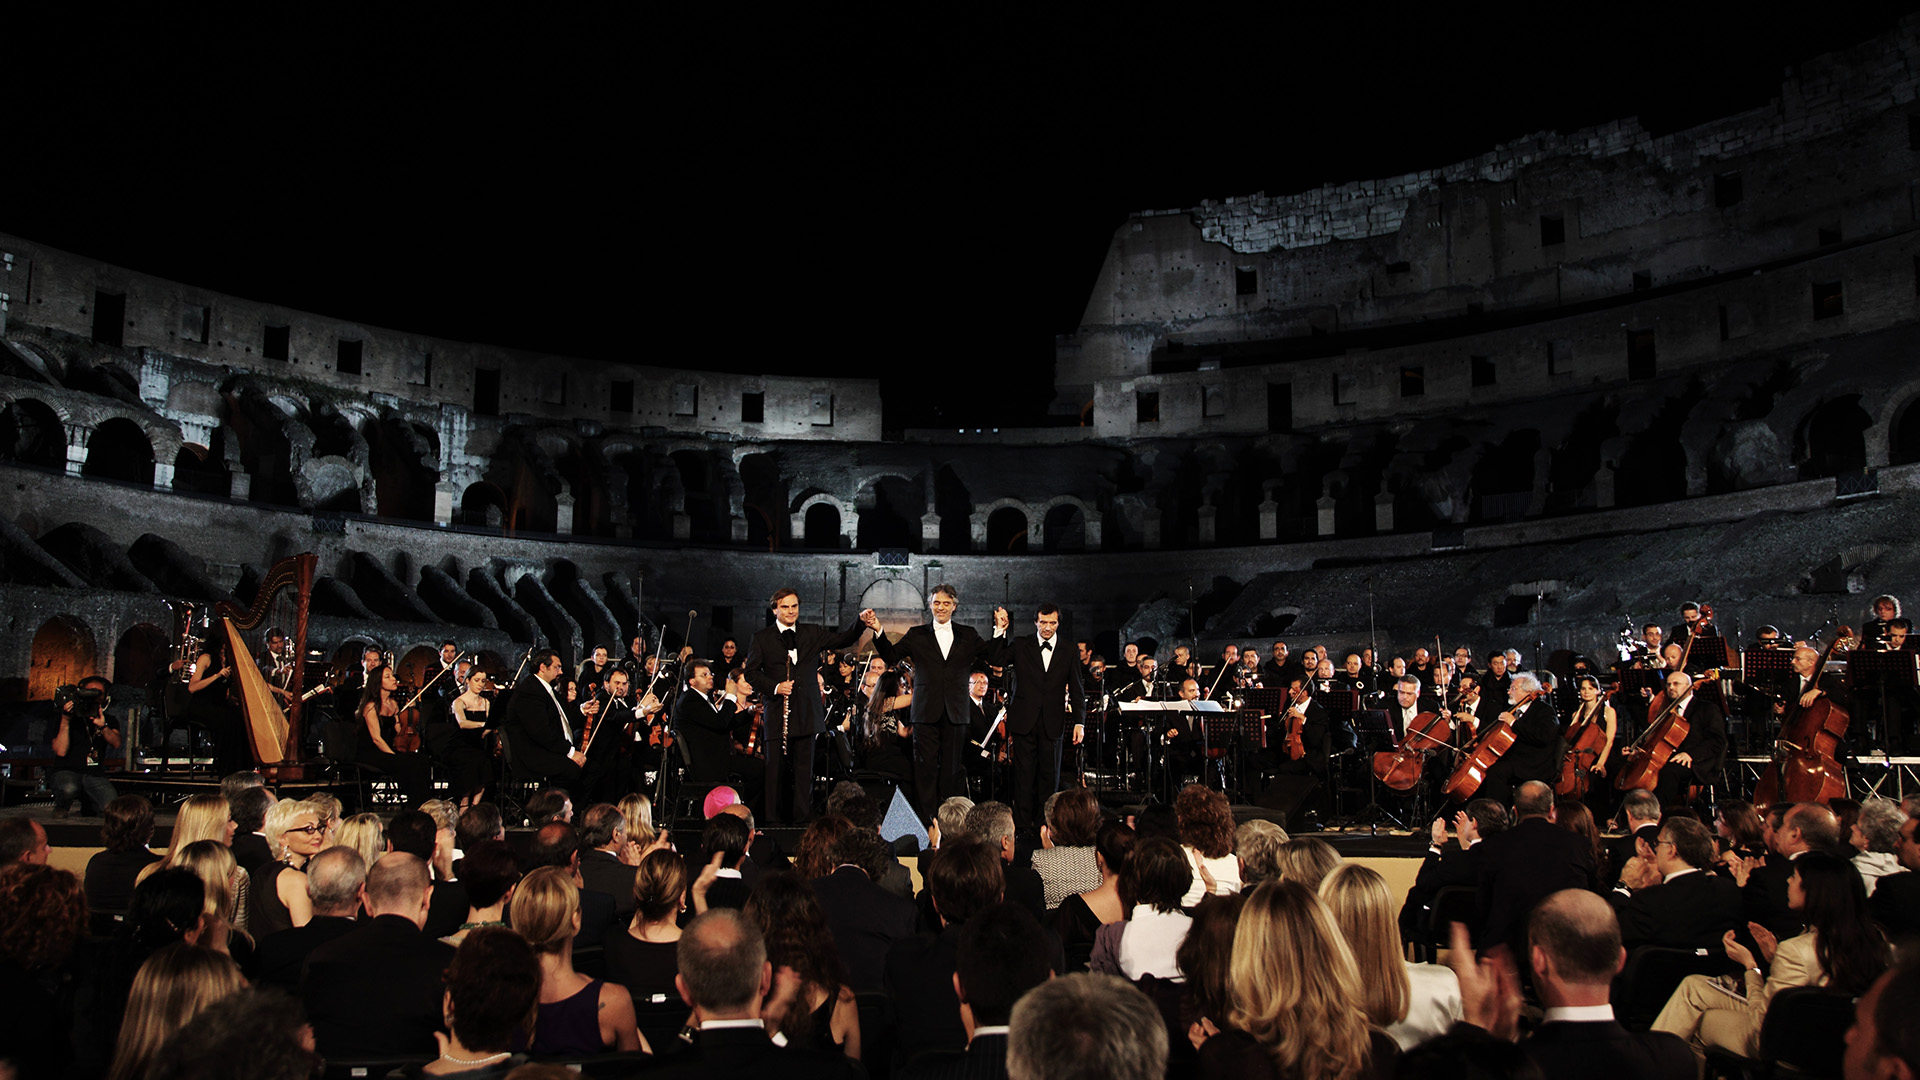 Concert At The Colosseo, Roma